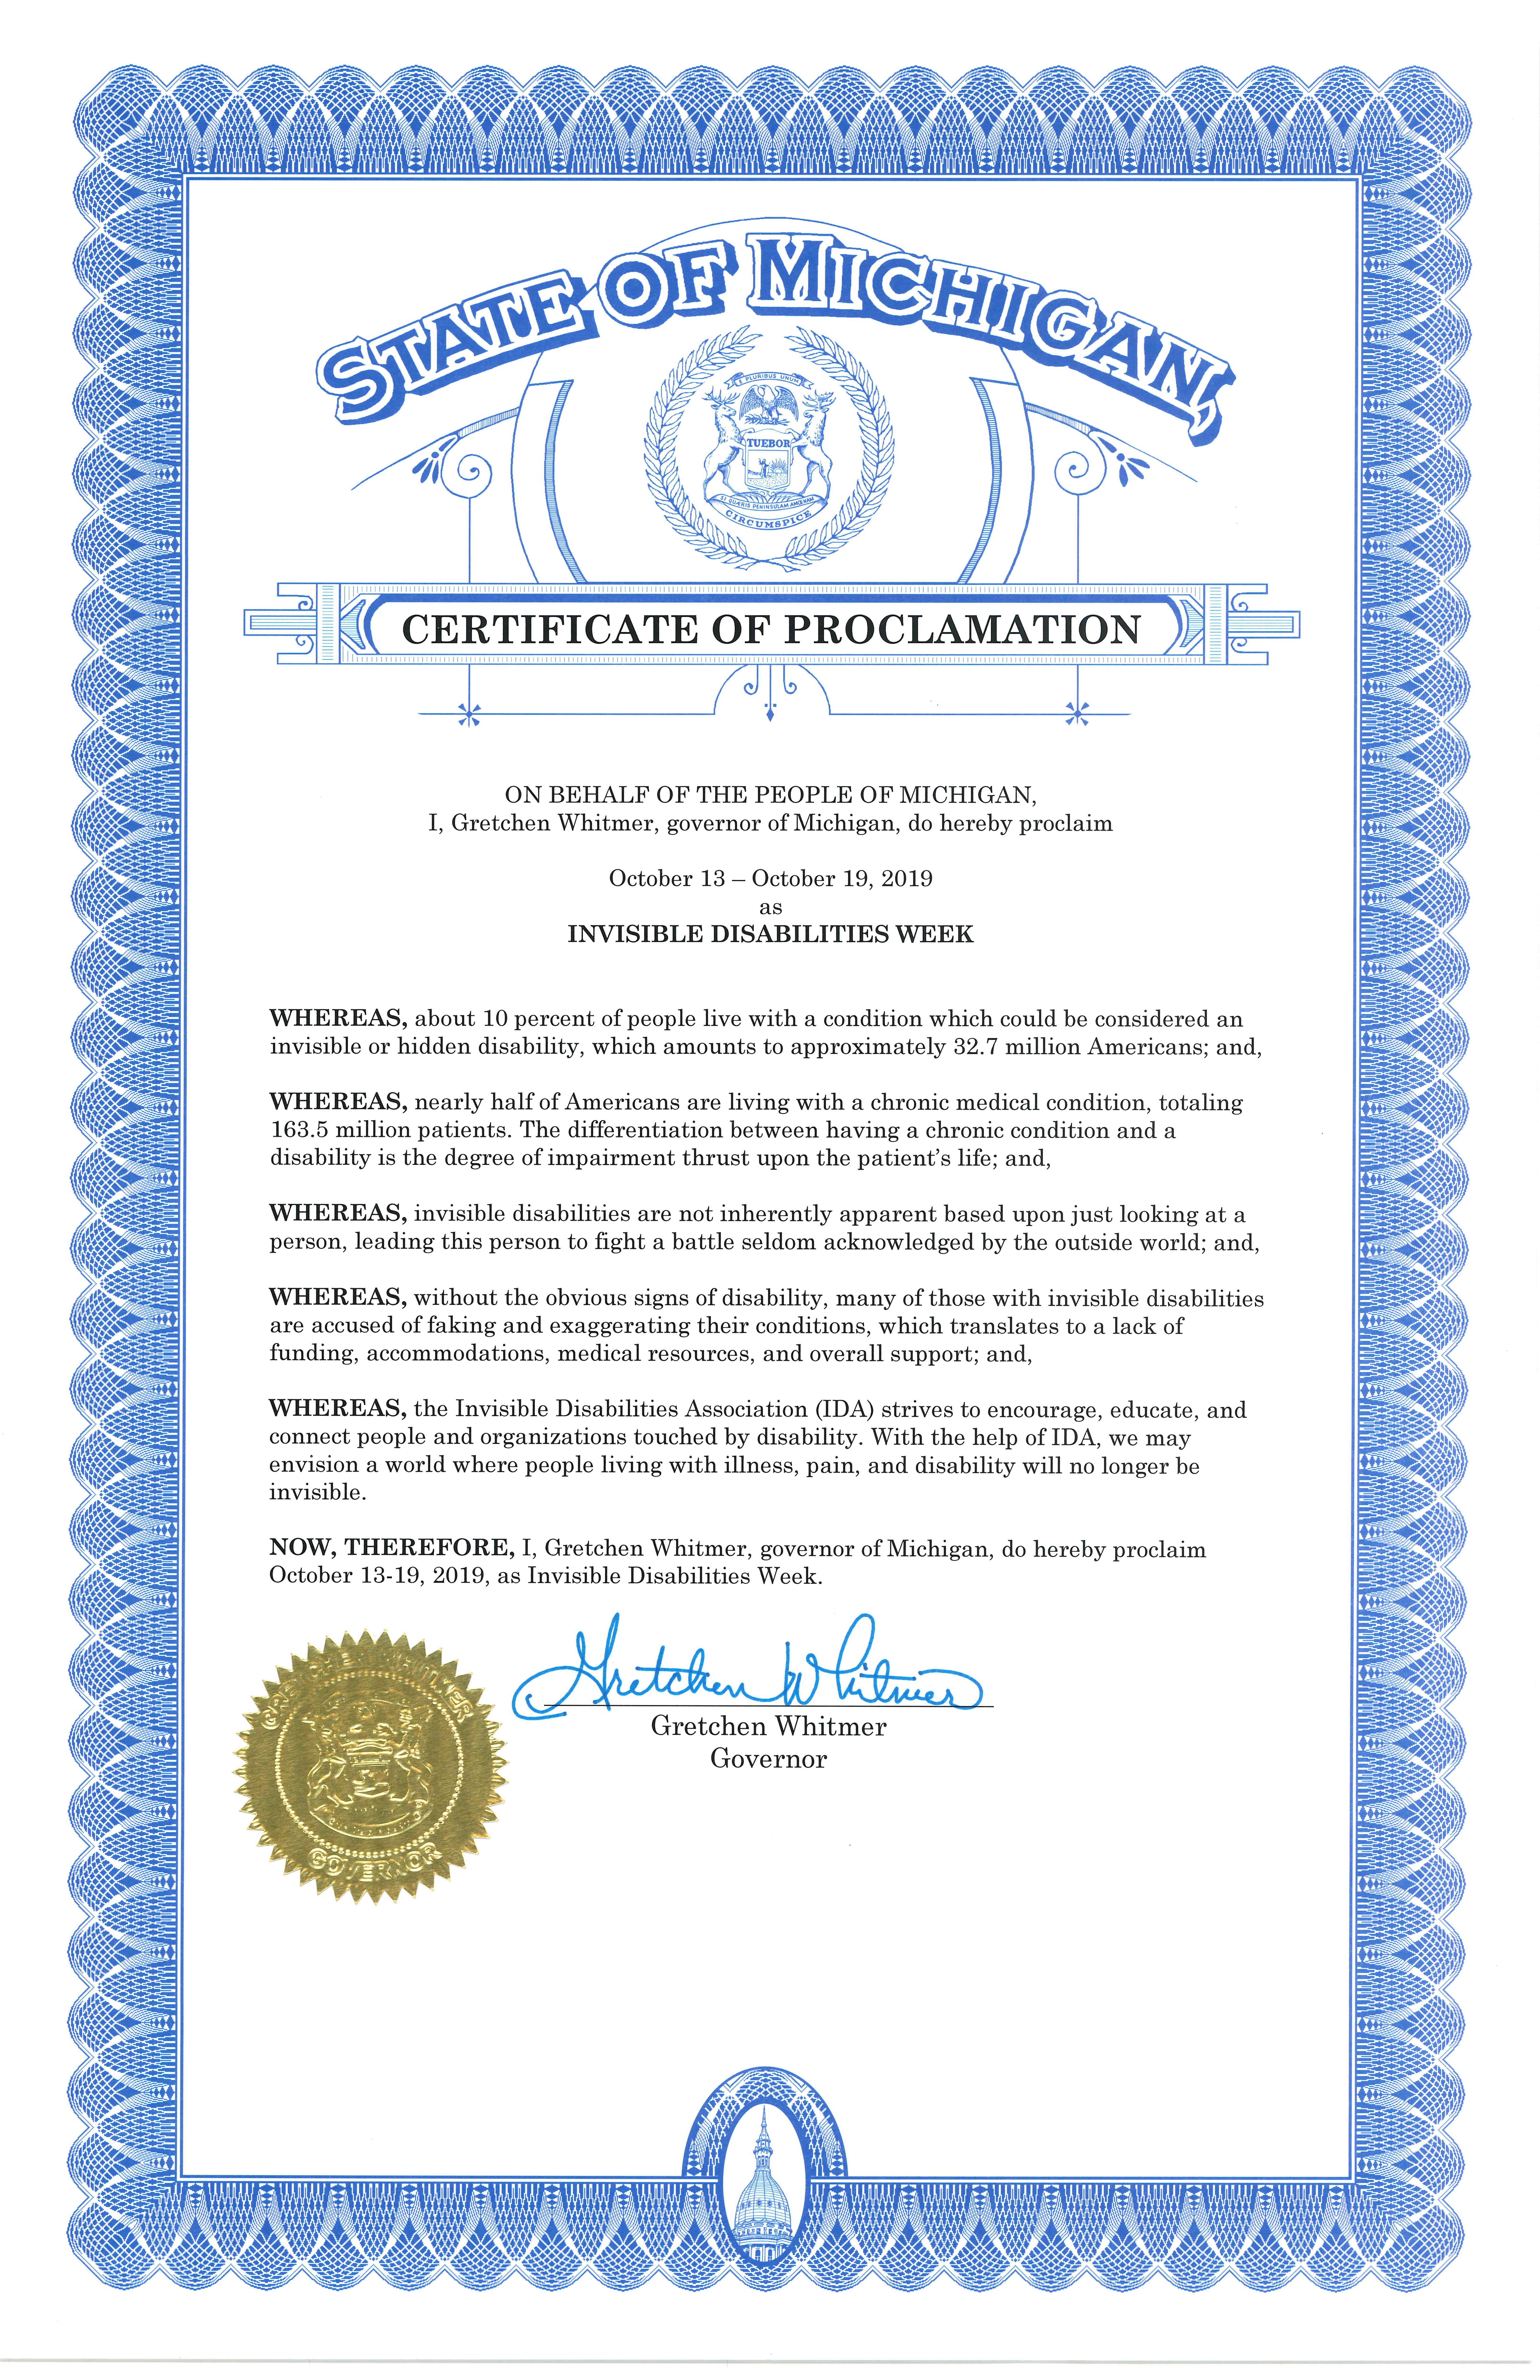 State of Michigan - Invisible Disabilities Week Proclamation 2019